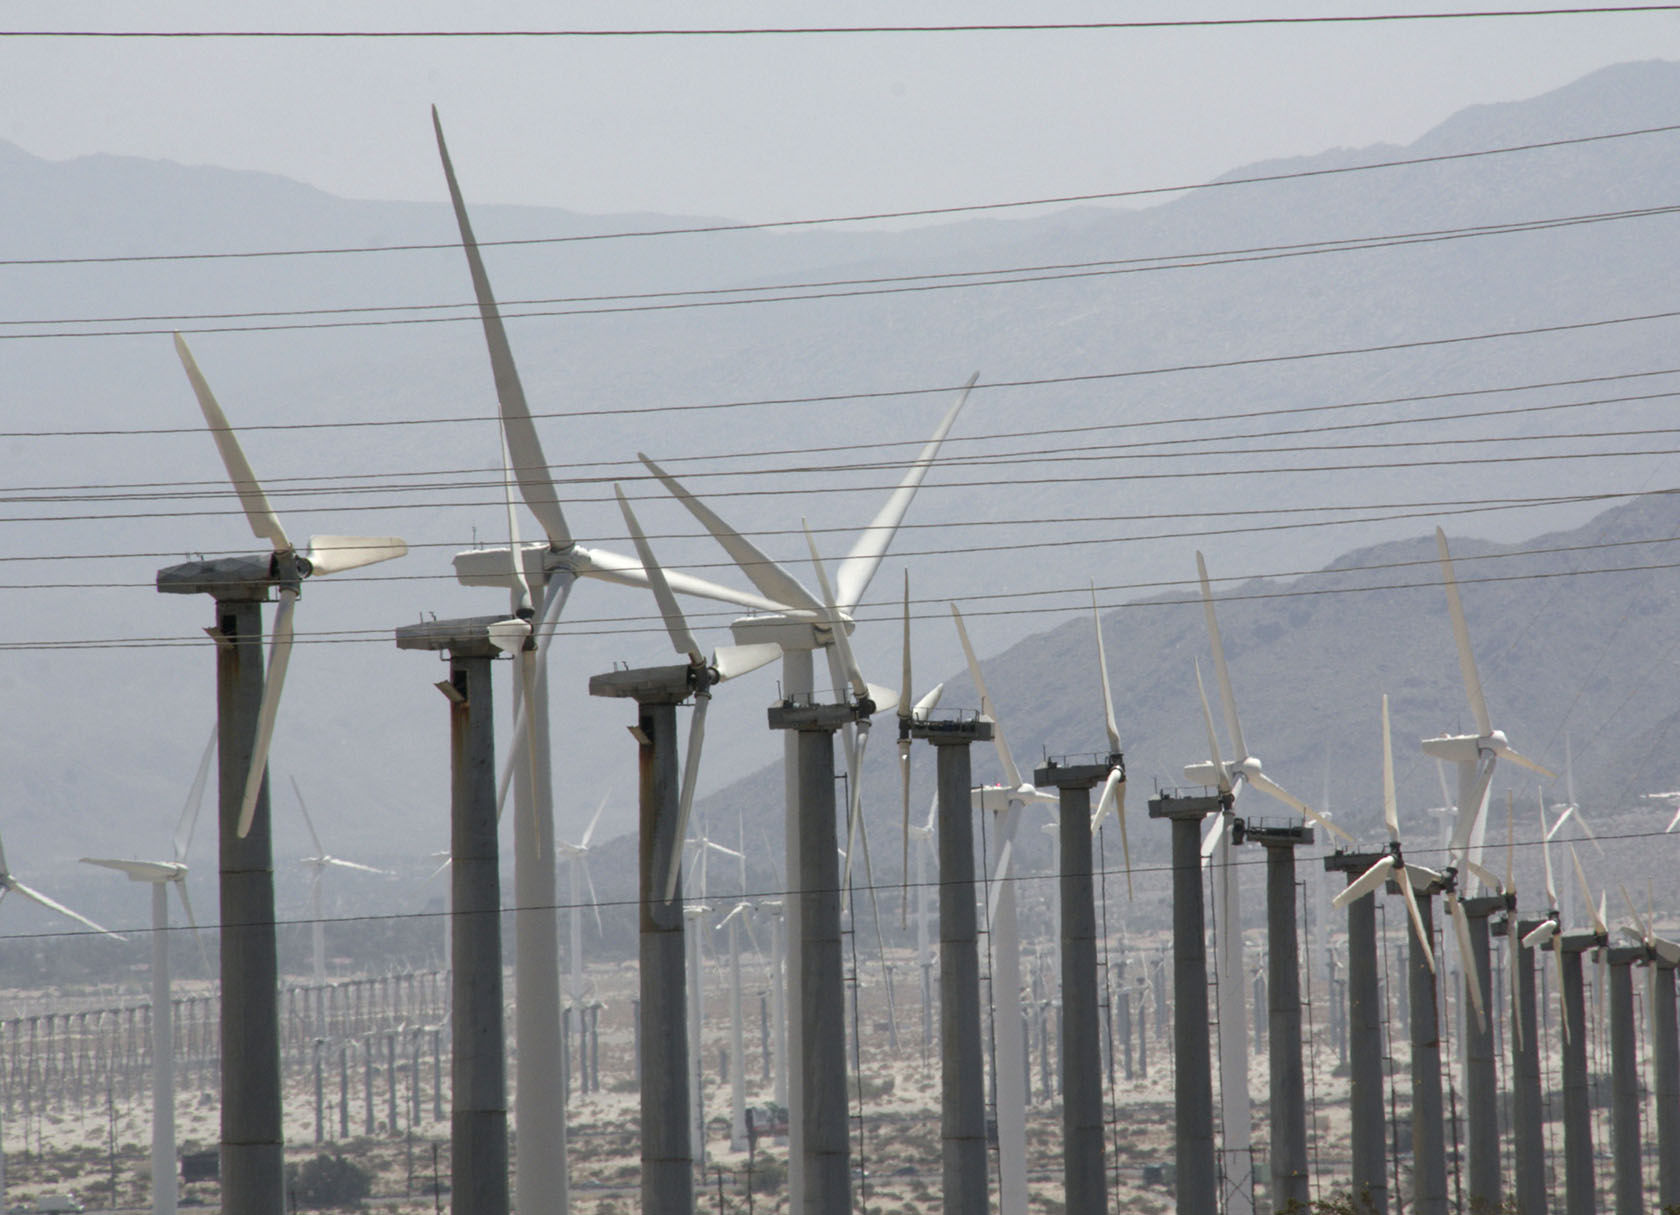 Windmills #Windmills #DesertTour Things to do in Palm Springs #PalmSprings